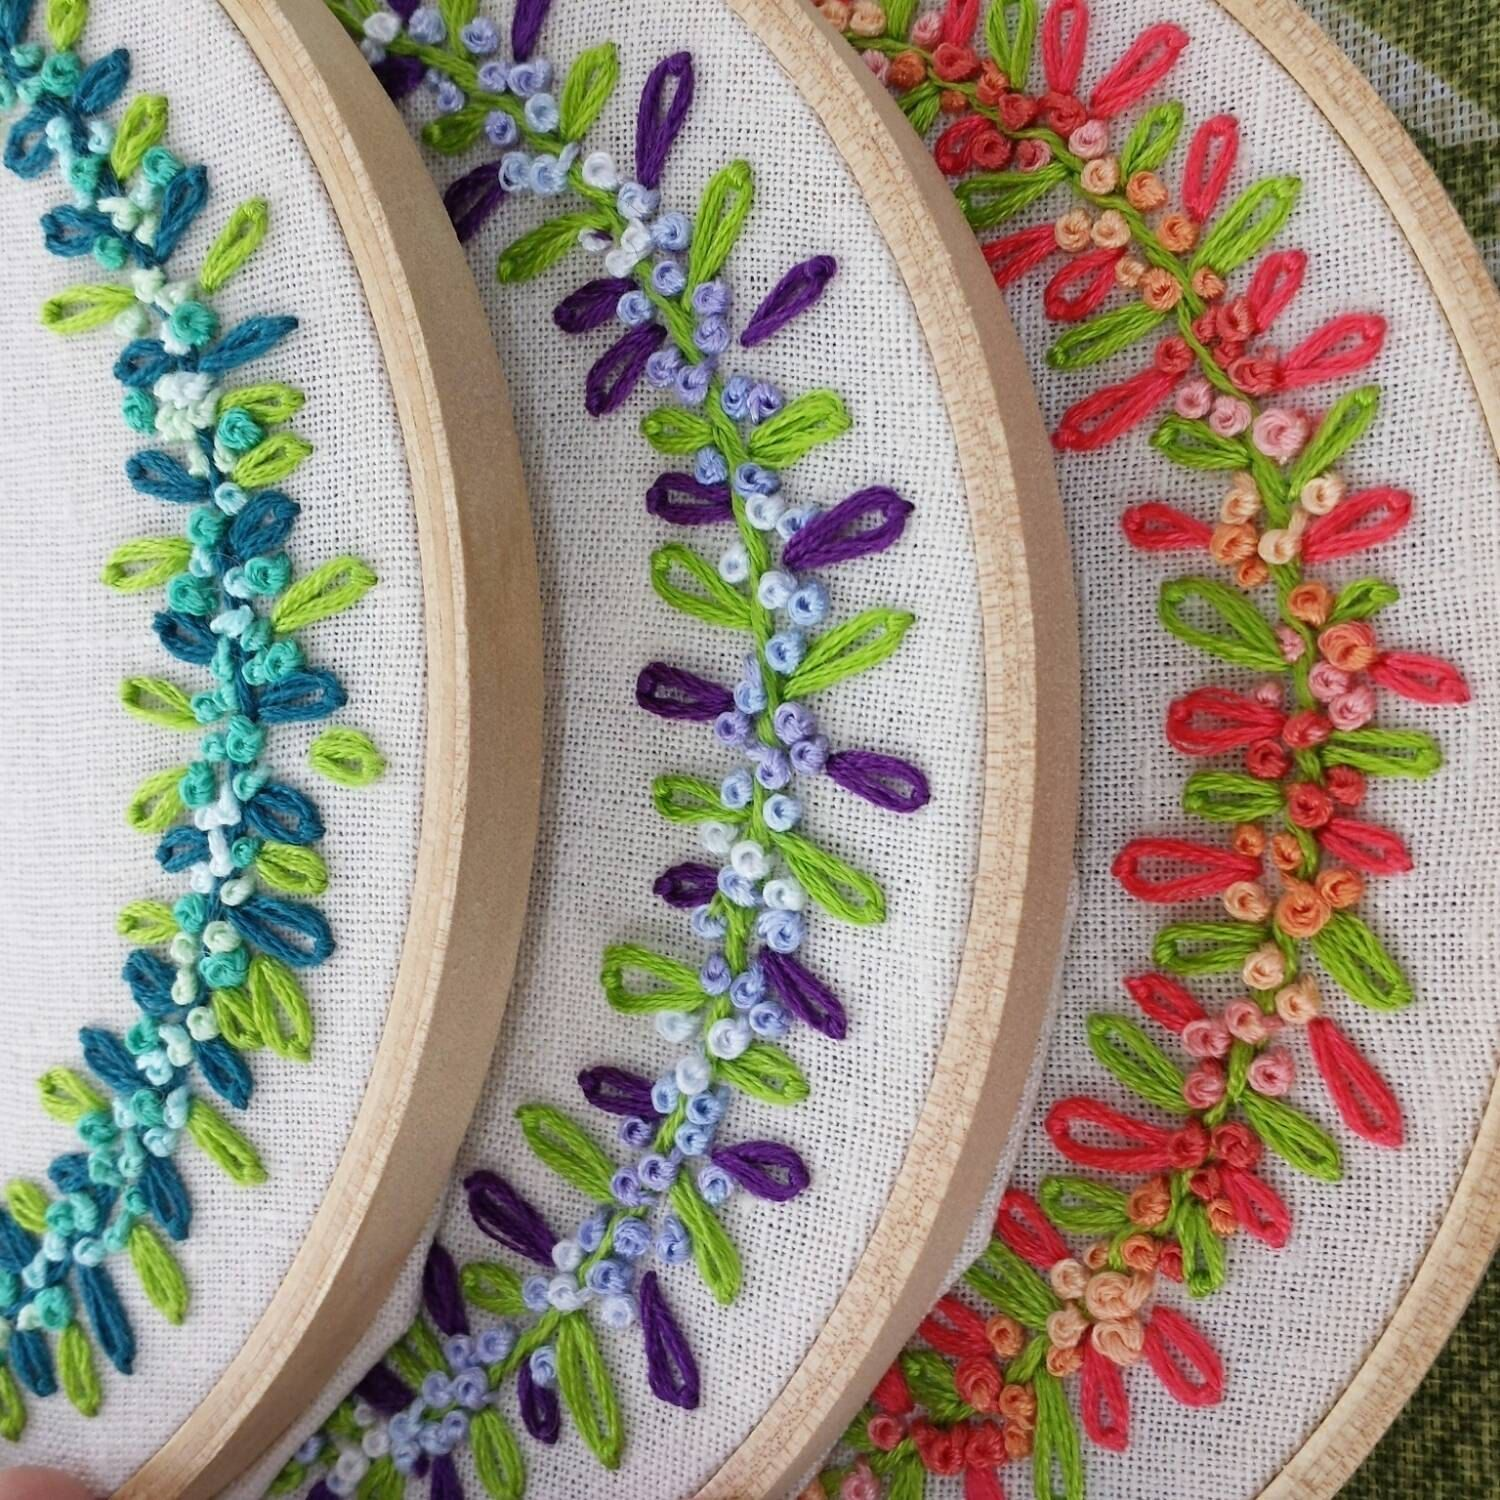 Hand embroidery hoop art name personalized embroidery embroidery